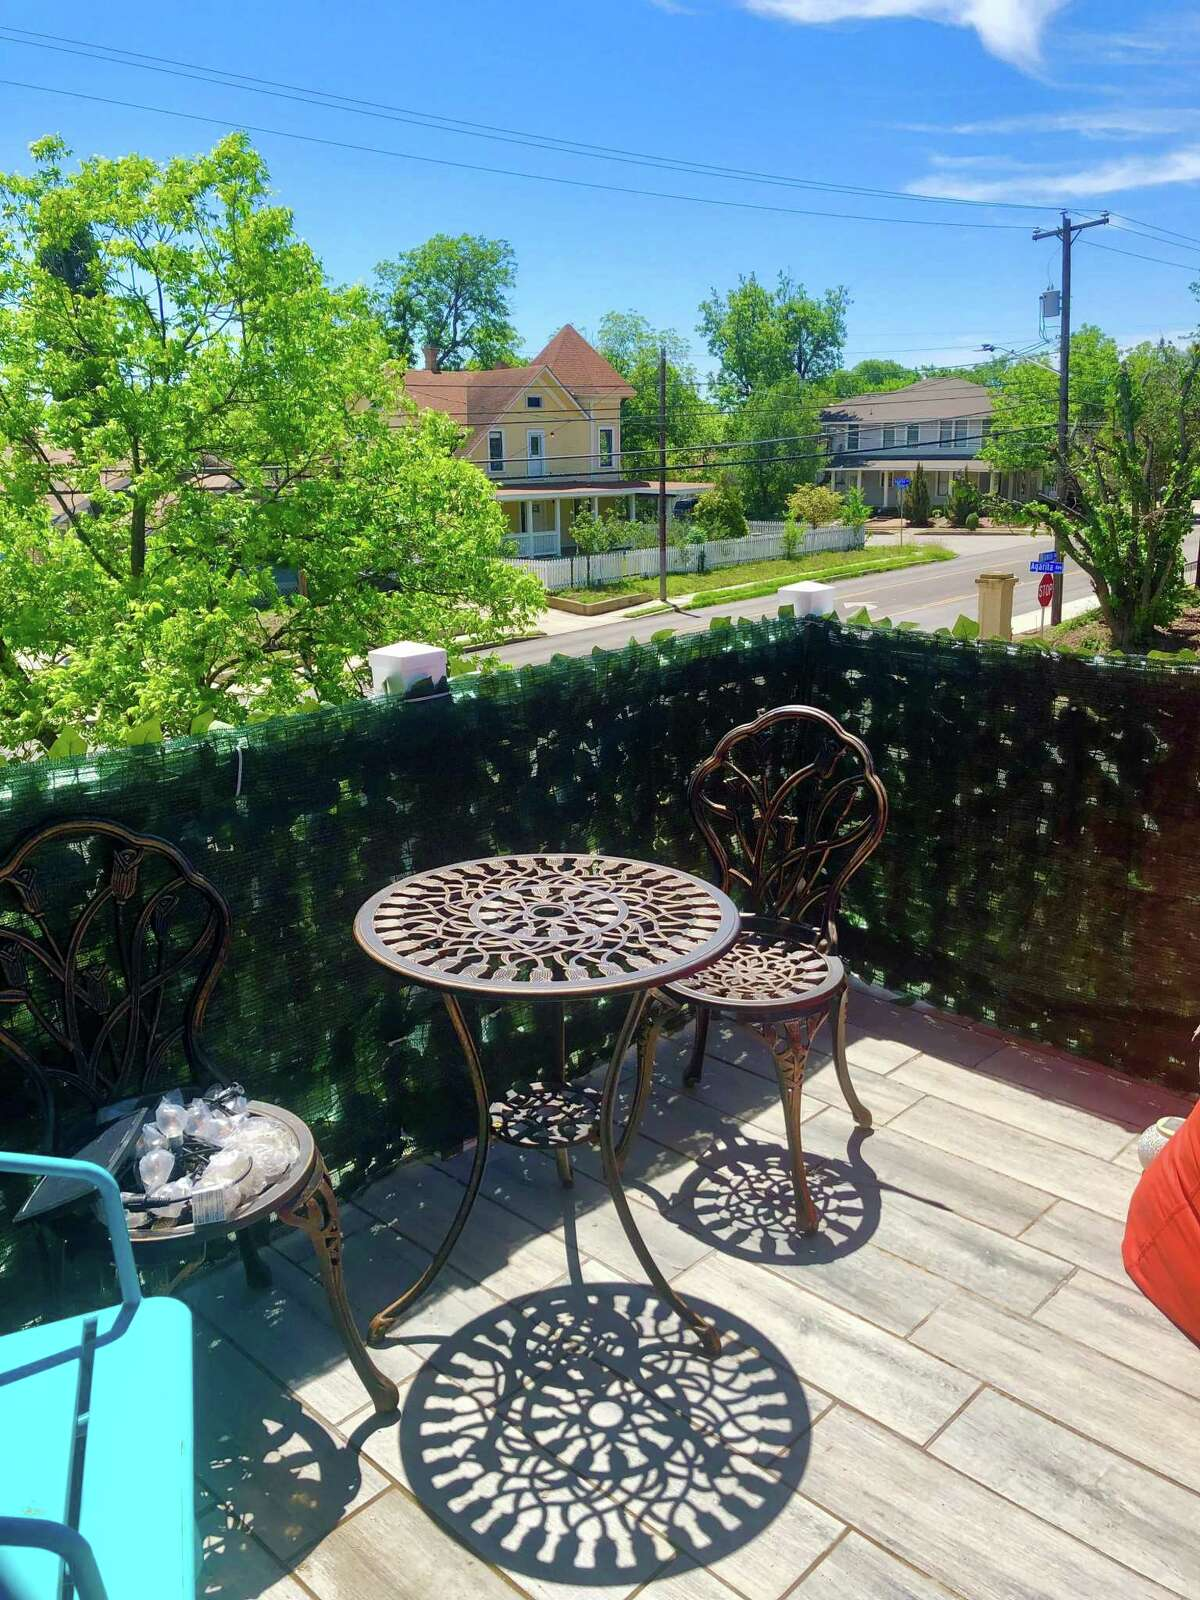 The rebuilt balcony off the master bedroom provides a pleasant outdoor seating area with a ceramic tile floor and fake ivy added to the surrounding railing for privacy.